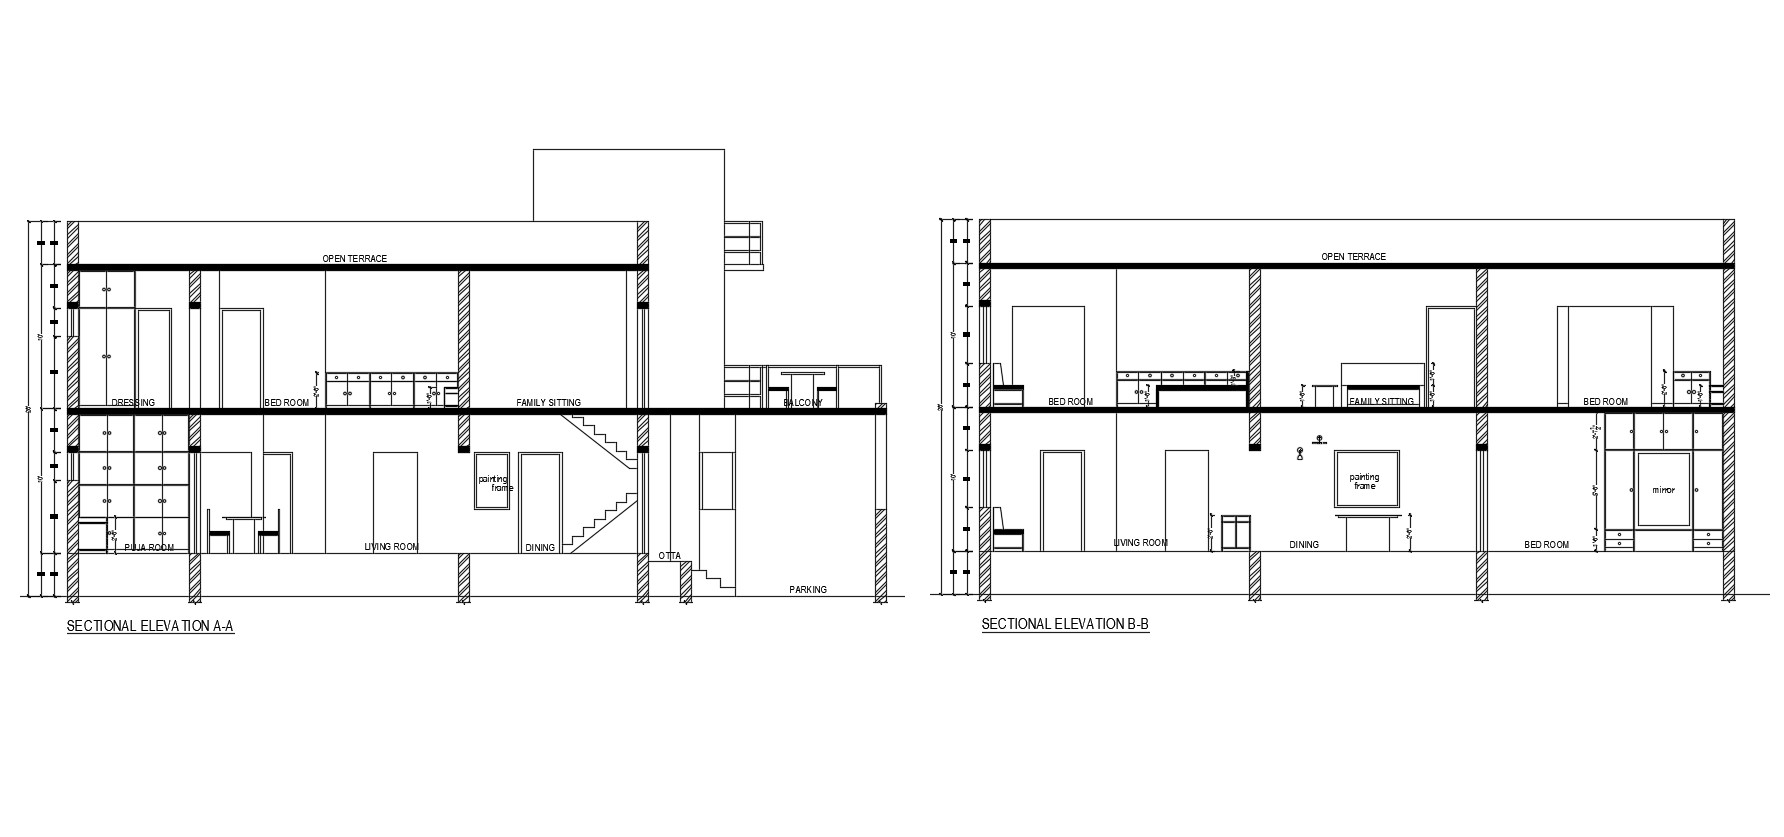 Sectional Elevation Drawing Of 2 Storey House In Dwg File